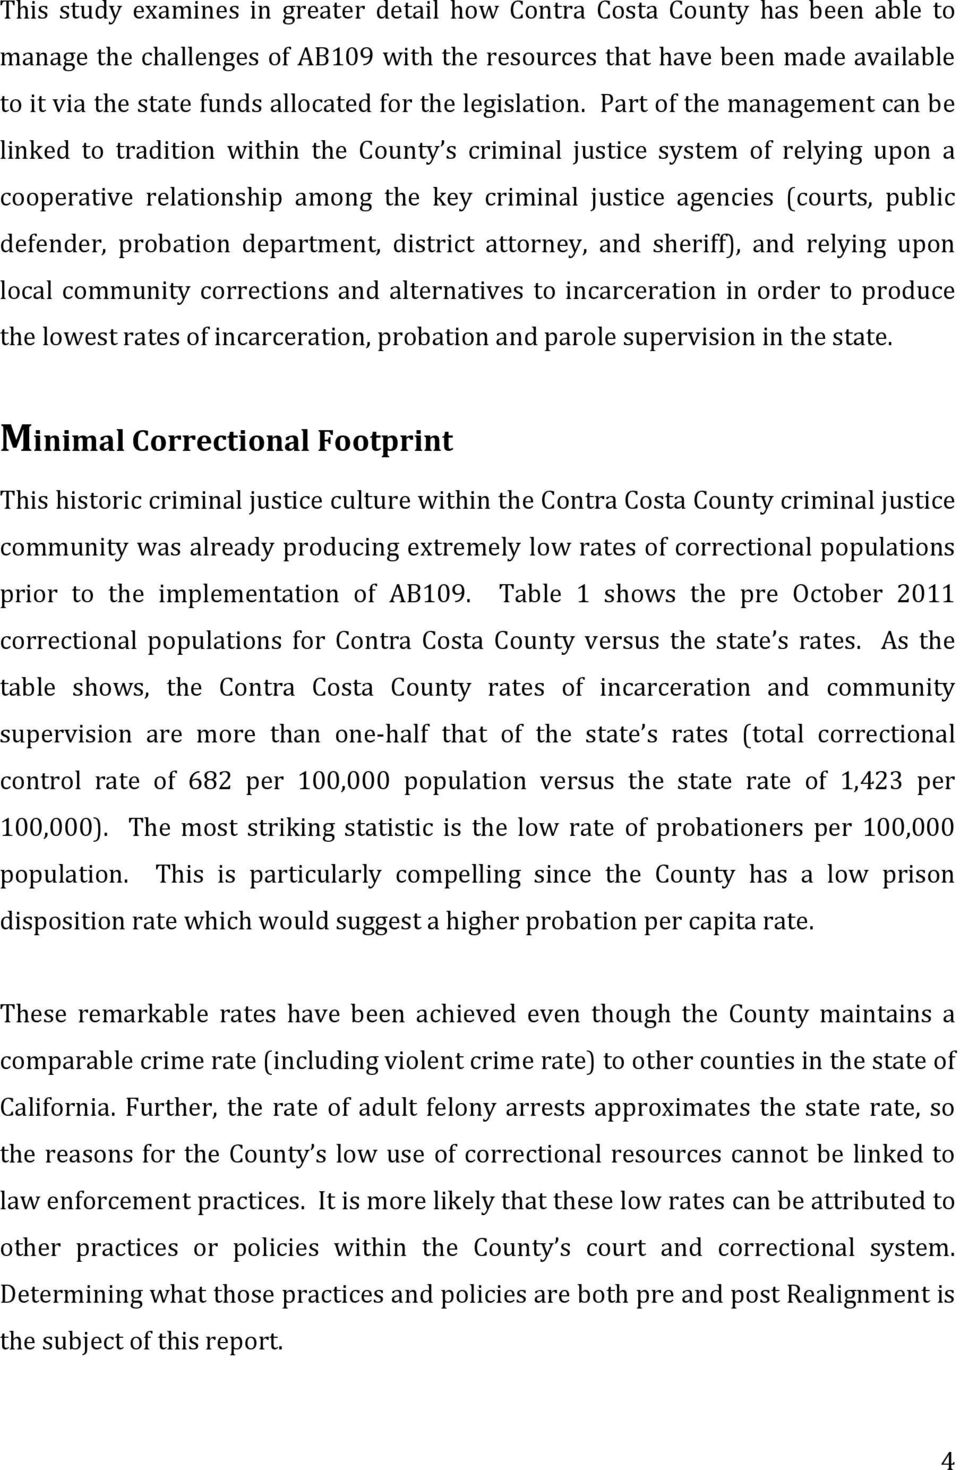 Part of the management can be linked to tradition within the County s criminal justice system of relying upon a cooperative relationship among the key criminal justice agencies (courts, public